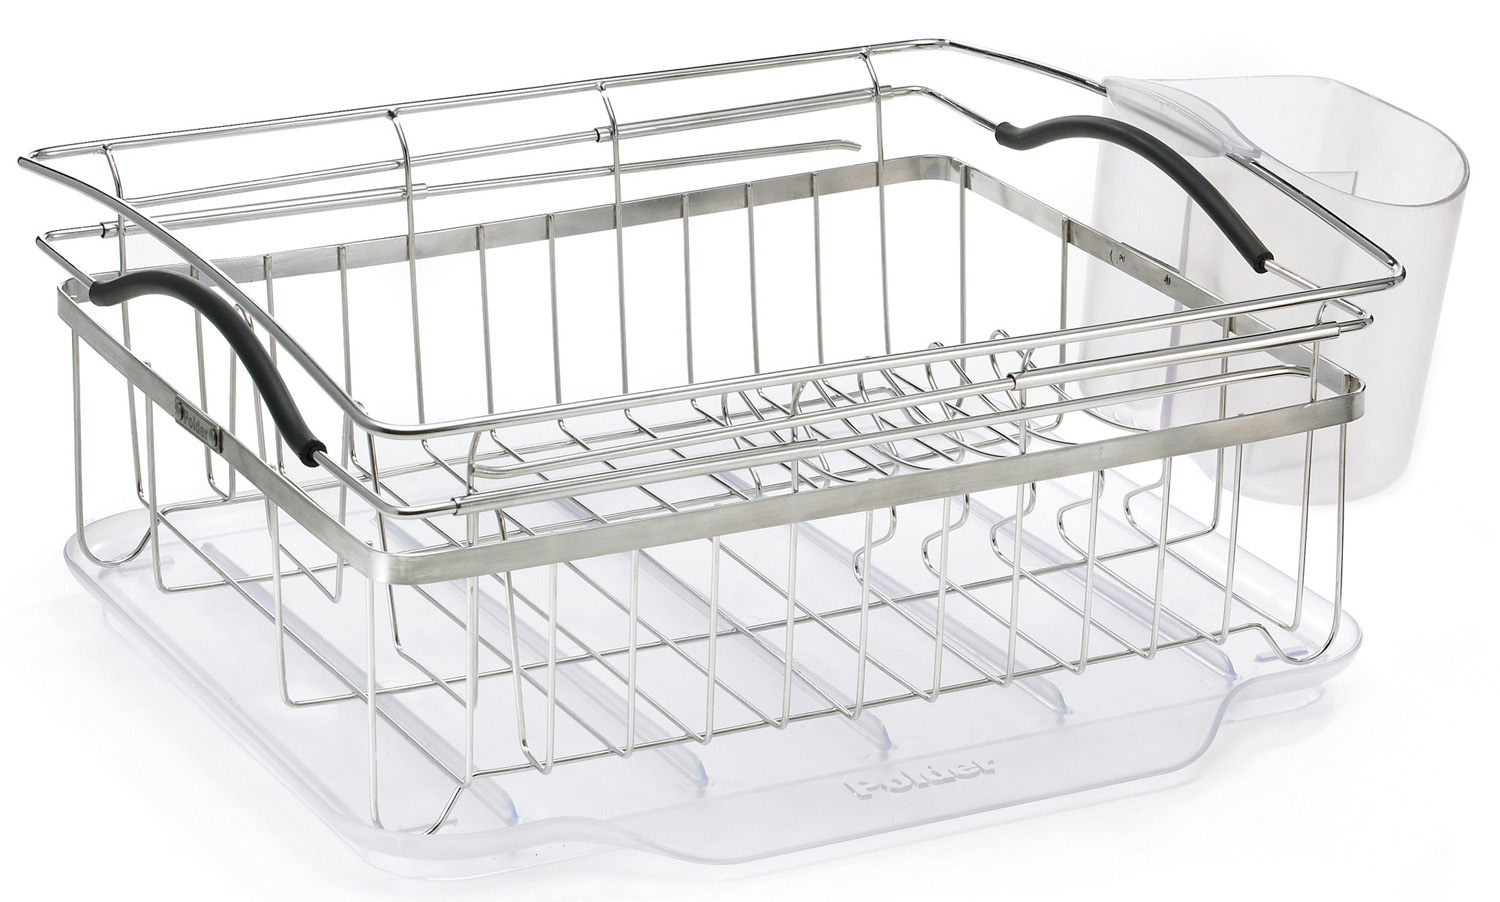 Polder Dish Rack- Compact Dish Rack From Polder (Part Number KTH-250)